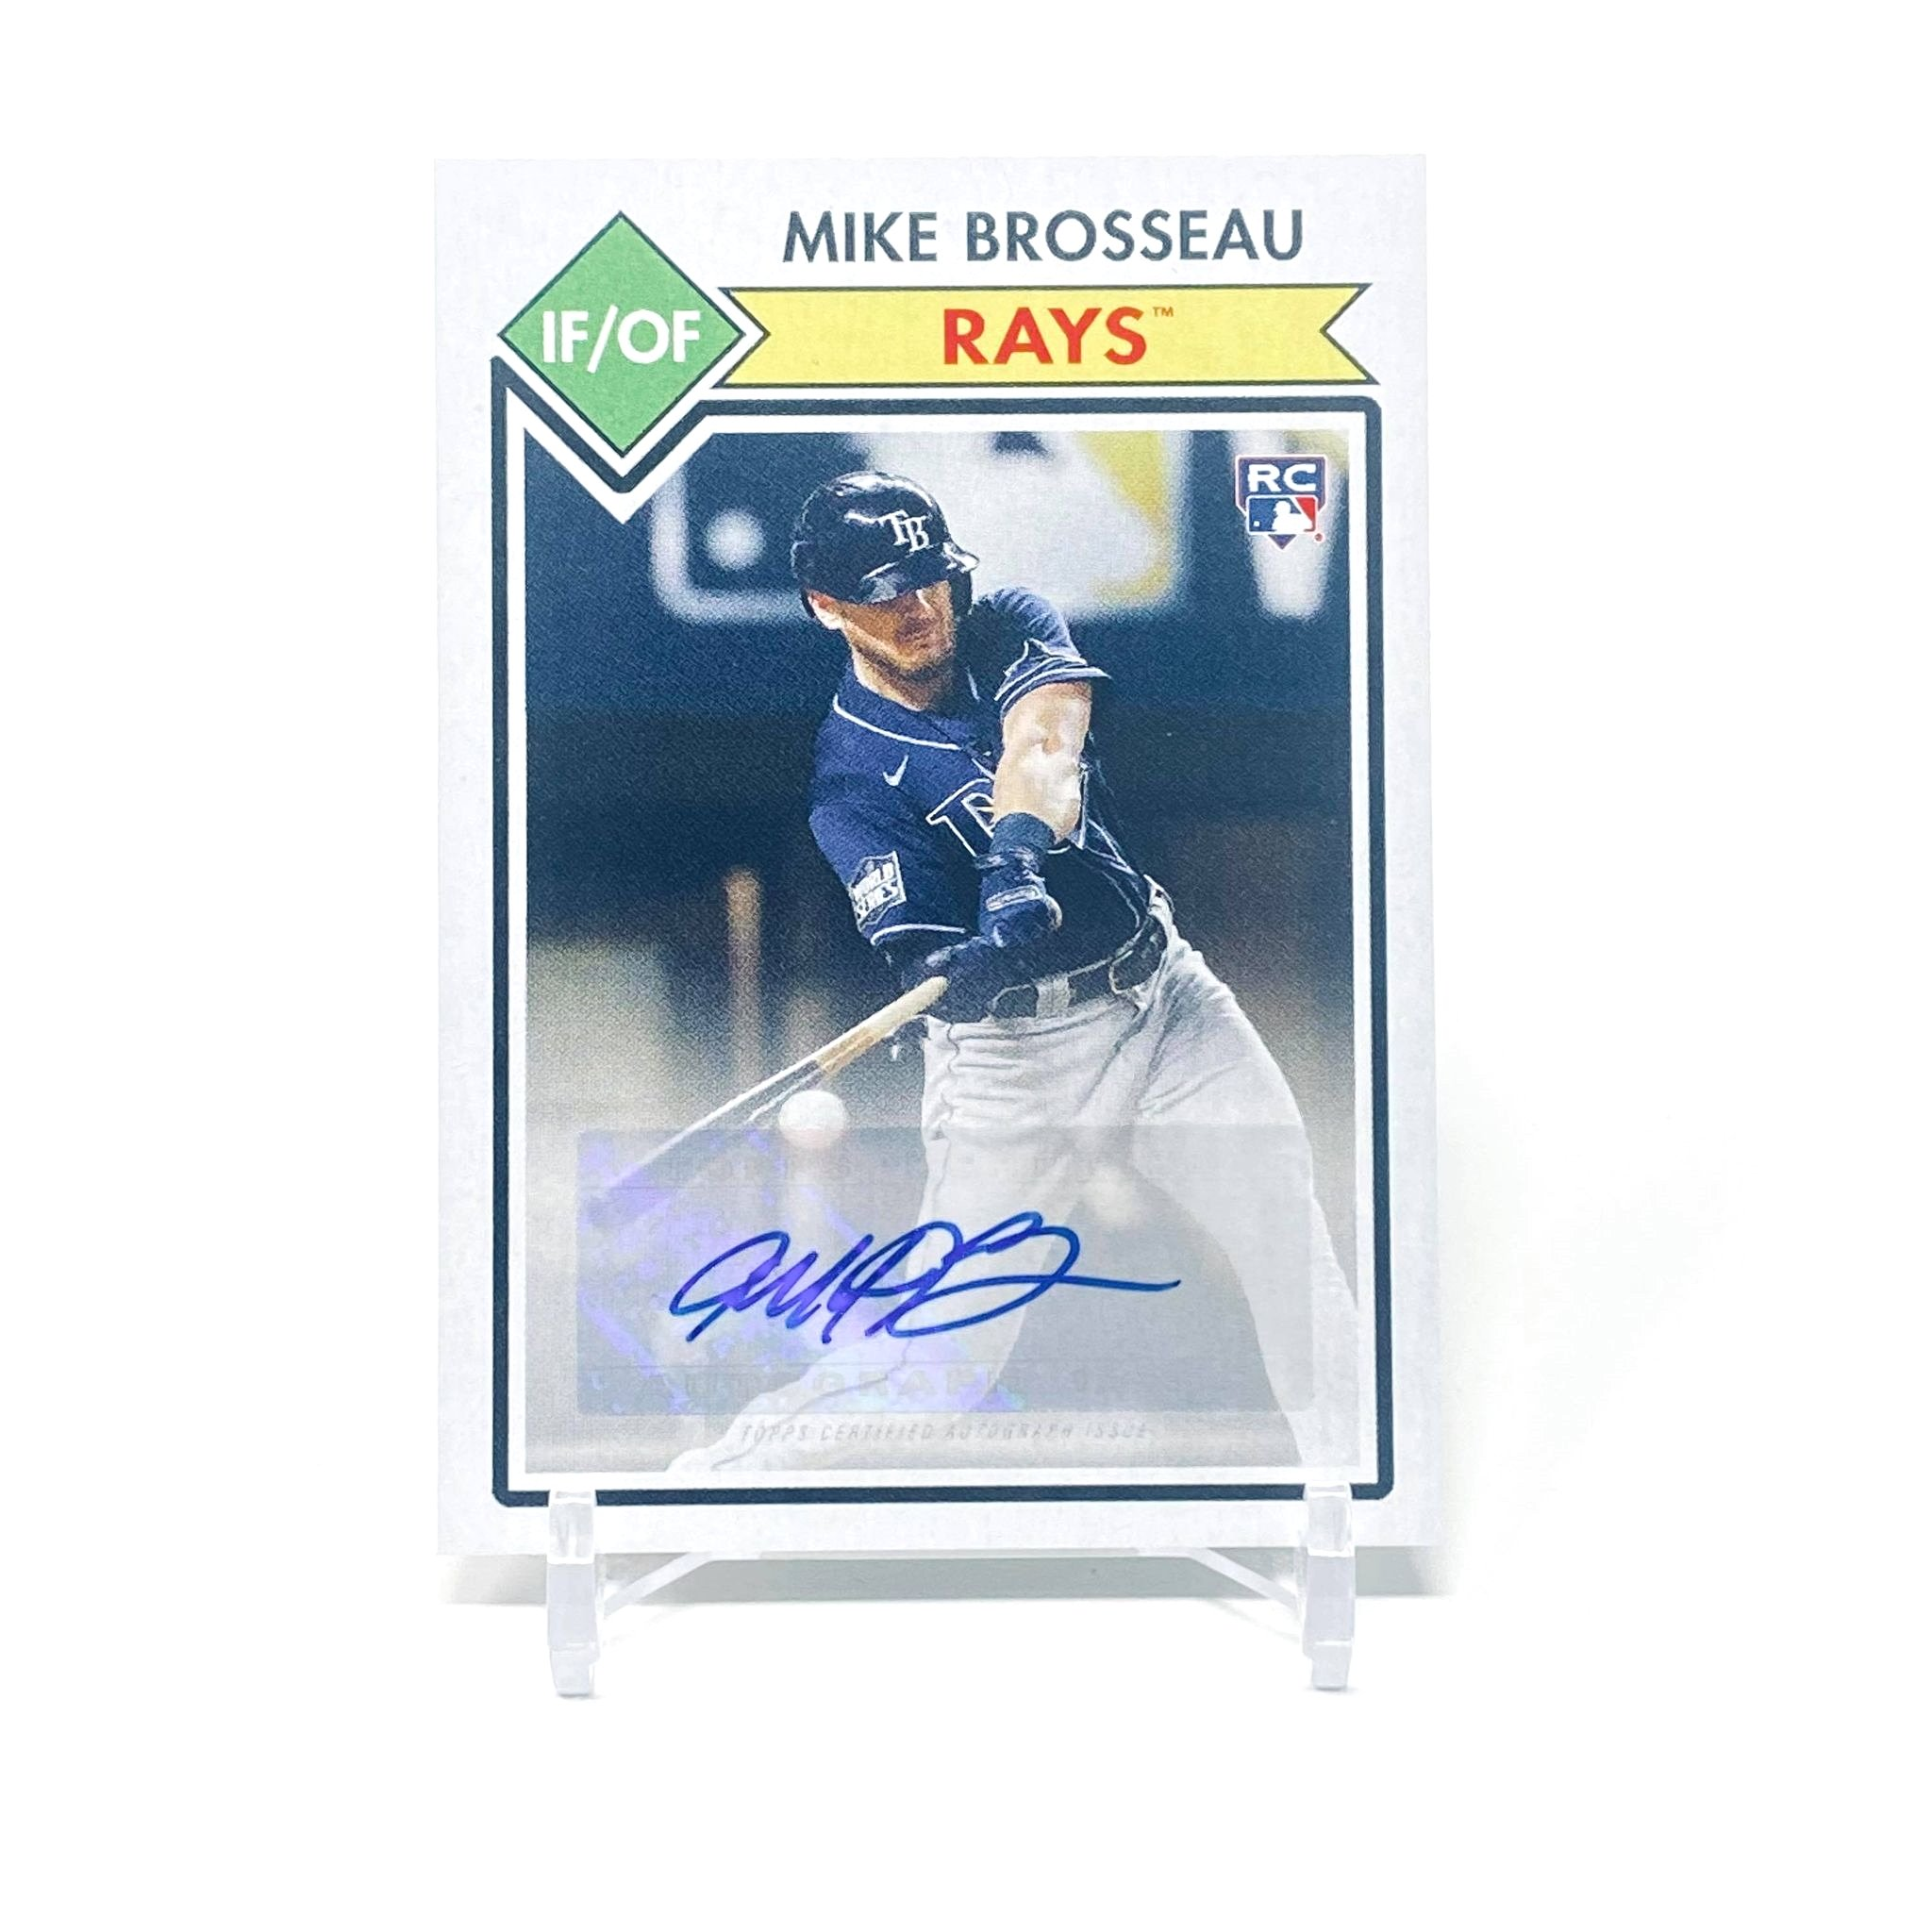 2021 Topps 582 Montgomery Club Mike Brosseau Rookie Autograph Tampa Bay Rays